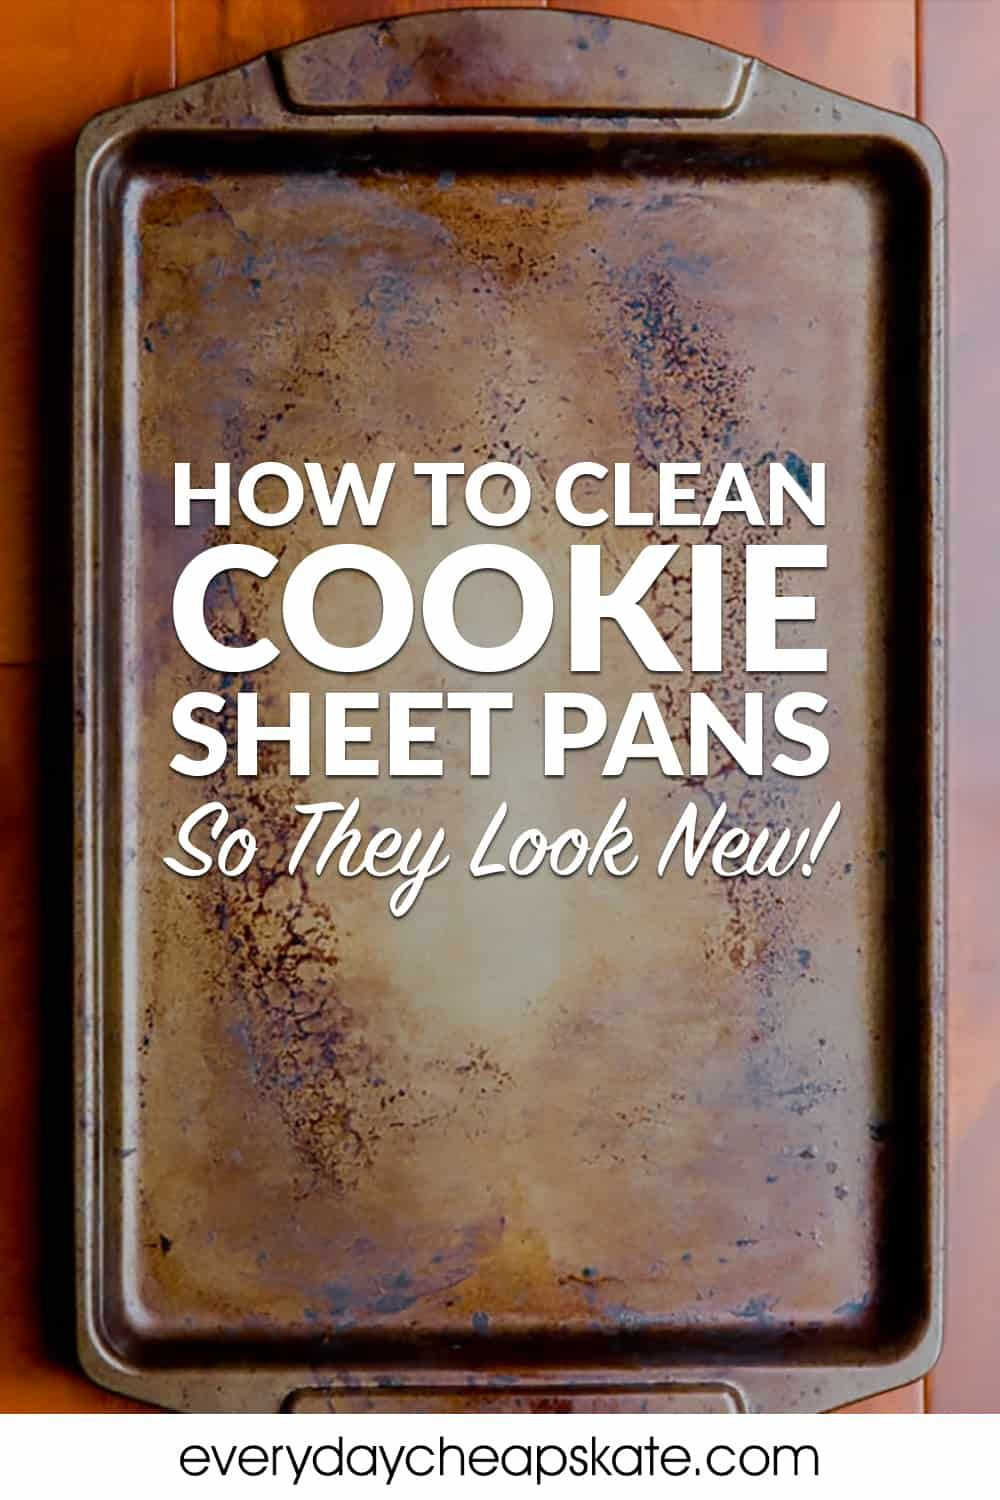 How to Clean Cookie Sheet Pans So They Look New! C